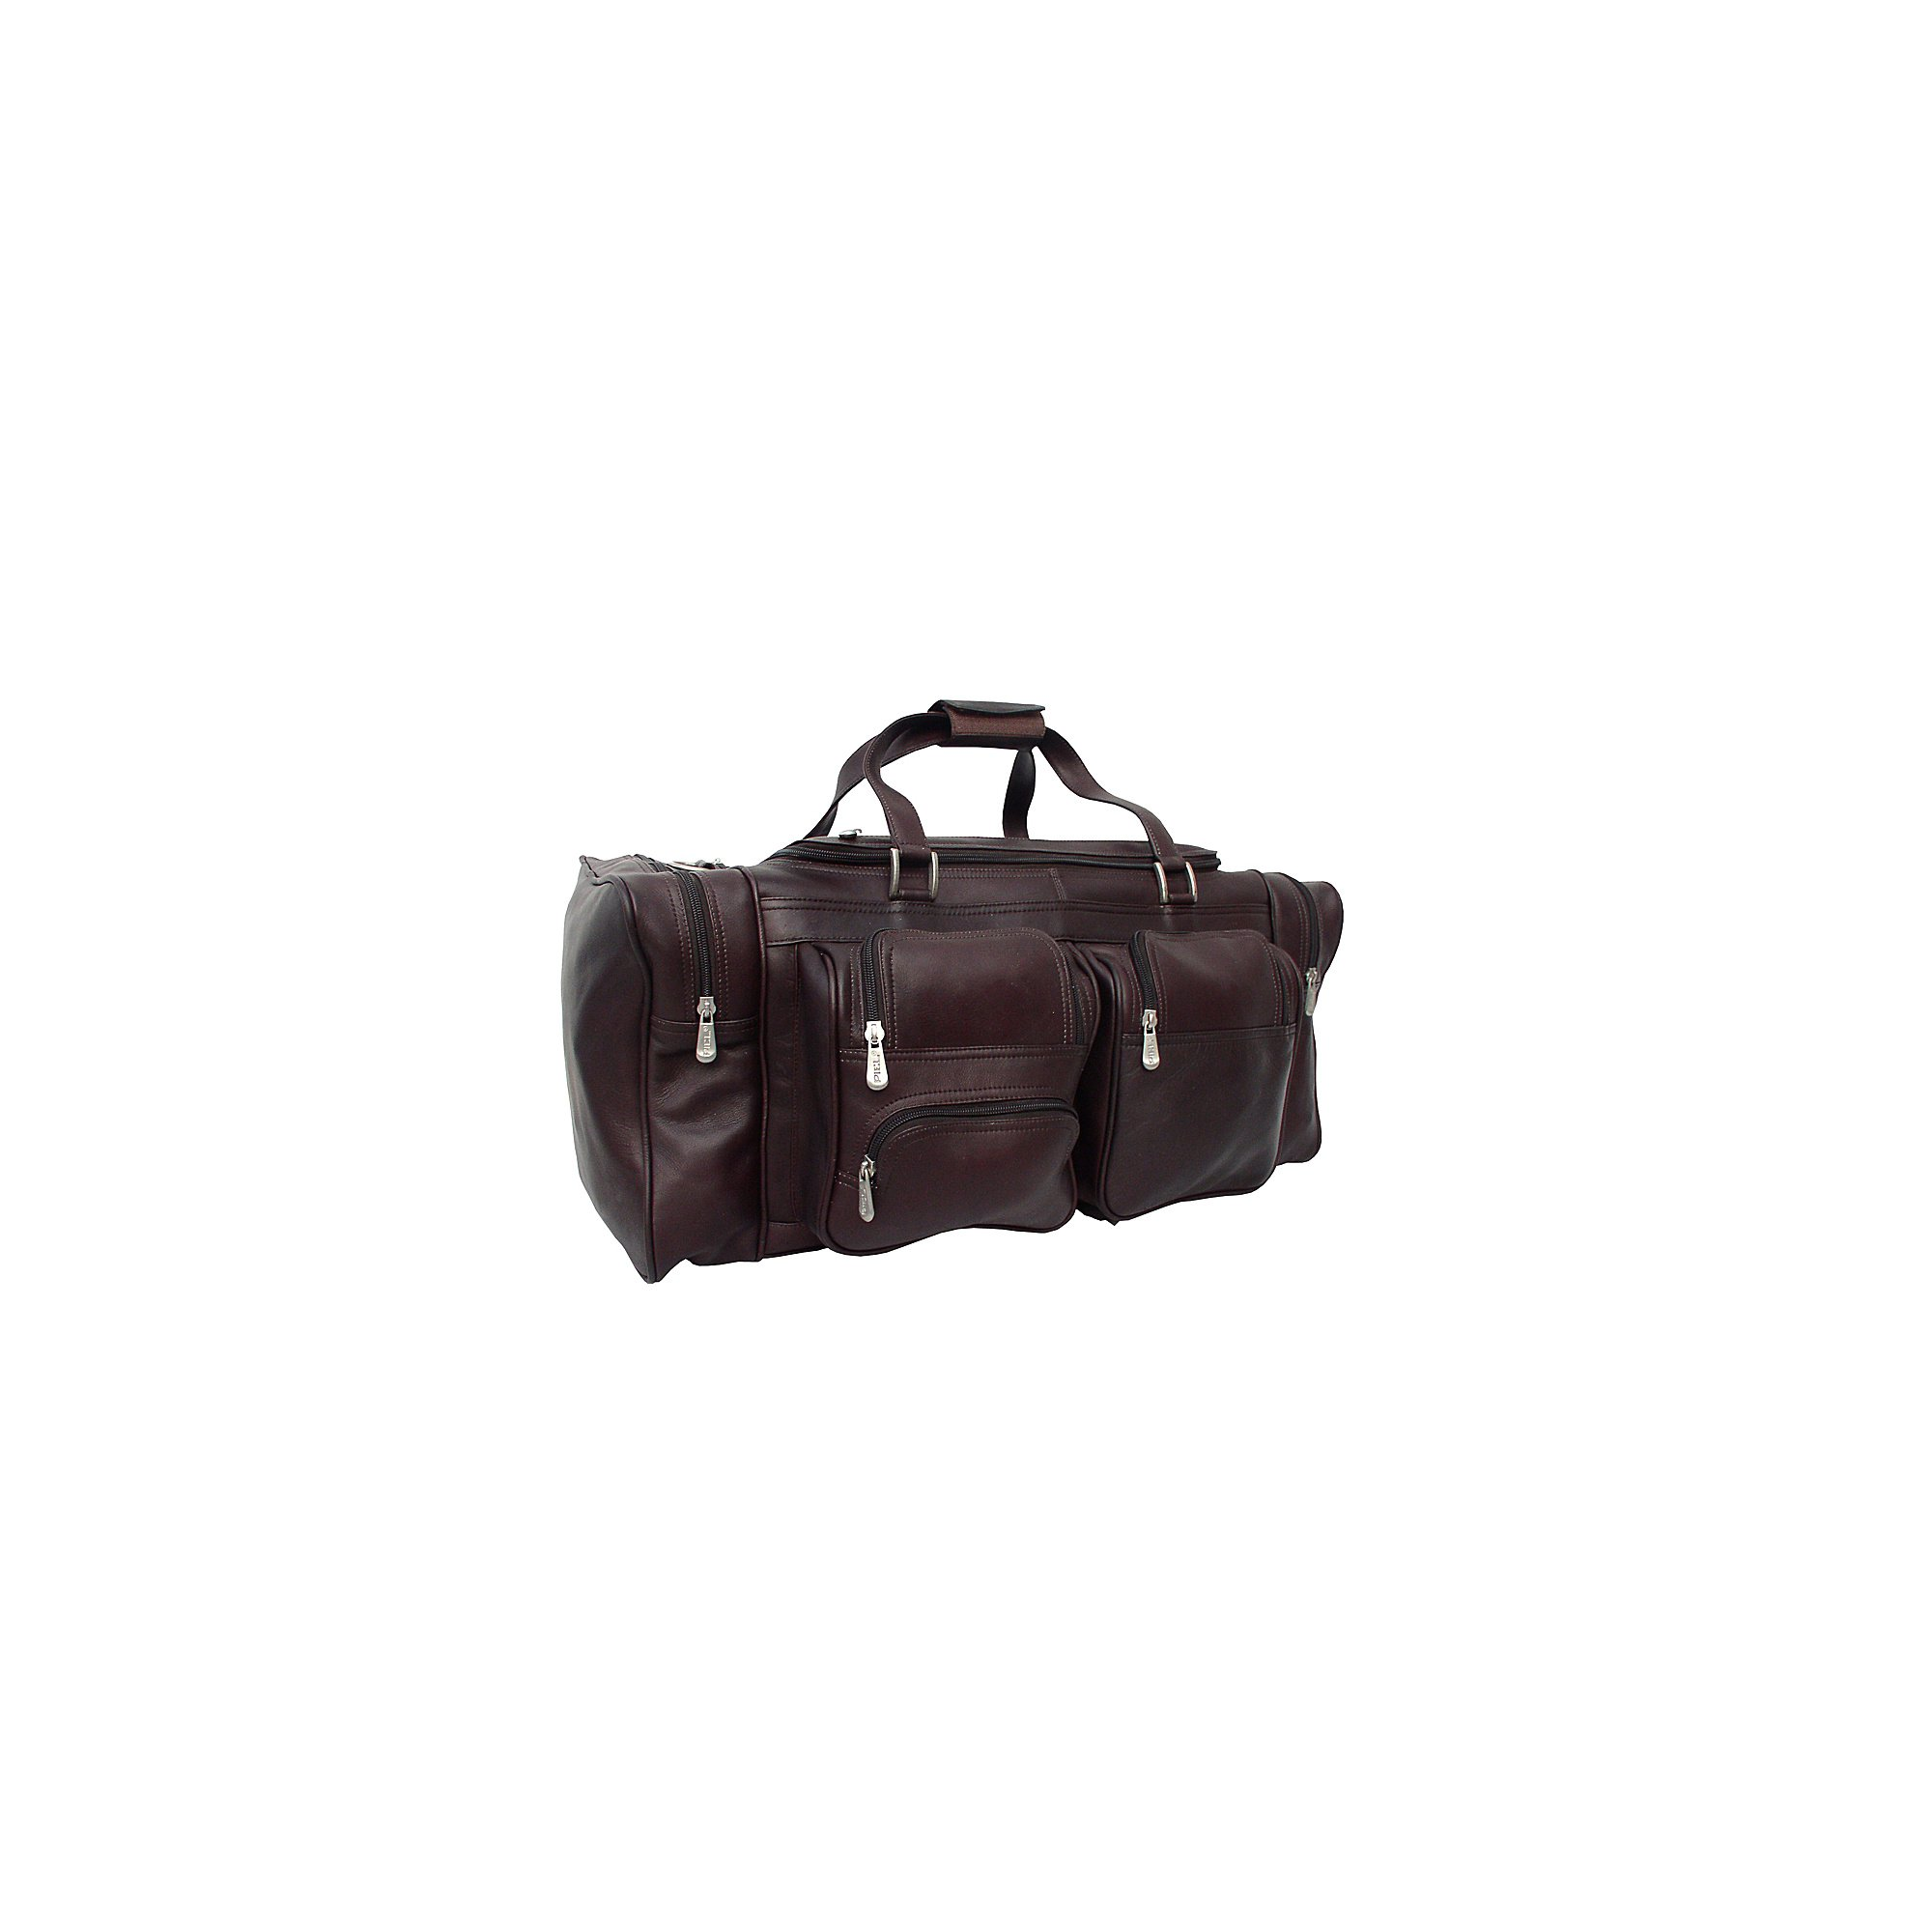 Piel Leather 24In Duffel with Pockets, Chocolate, One Size by Piel Leather (Image #1)